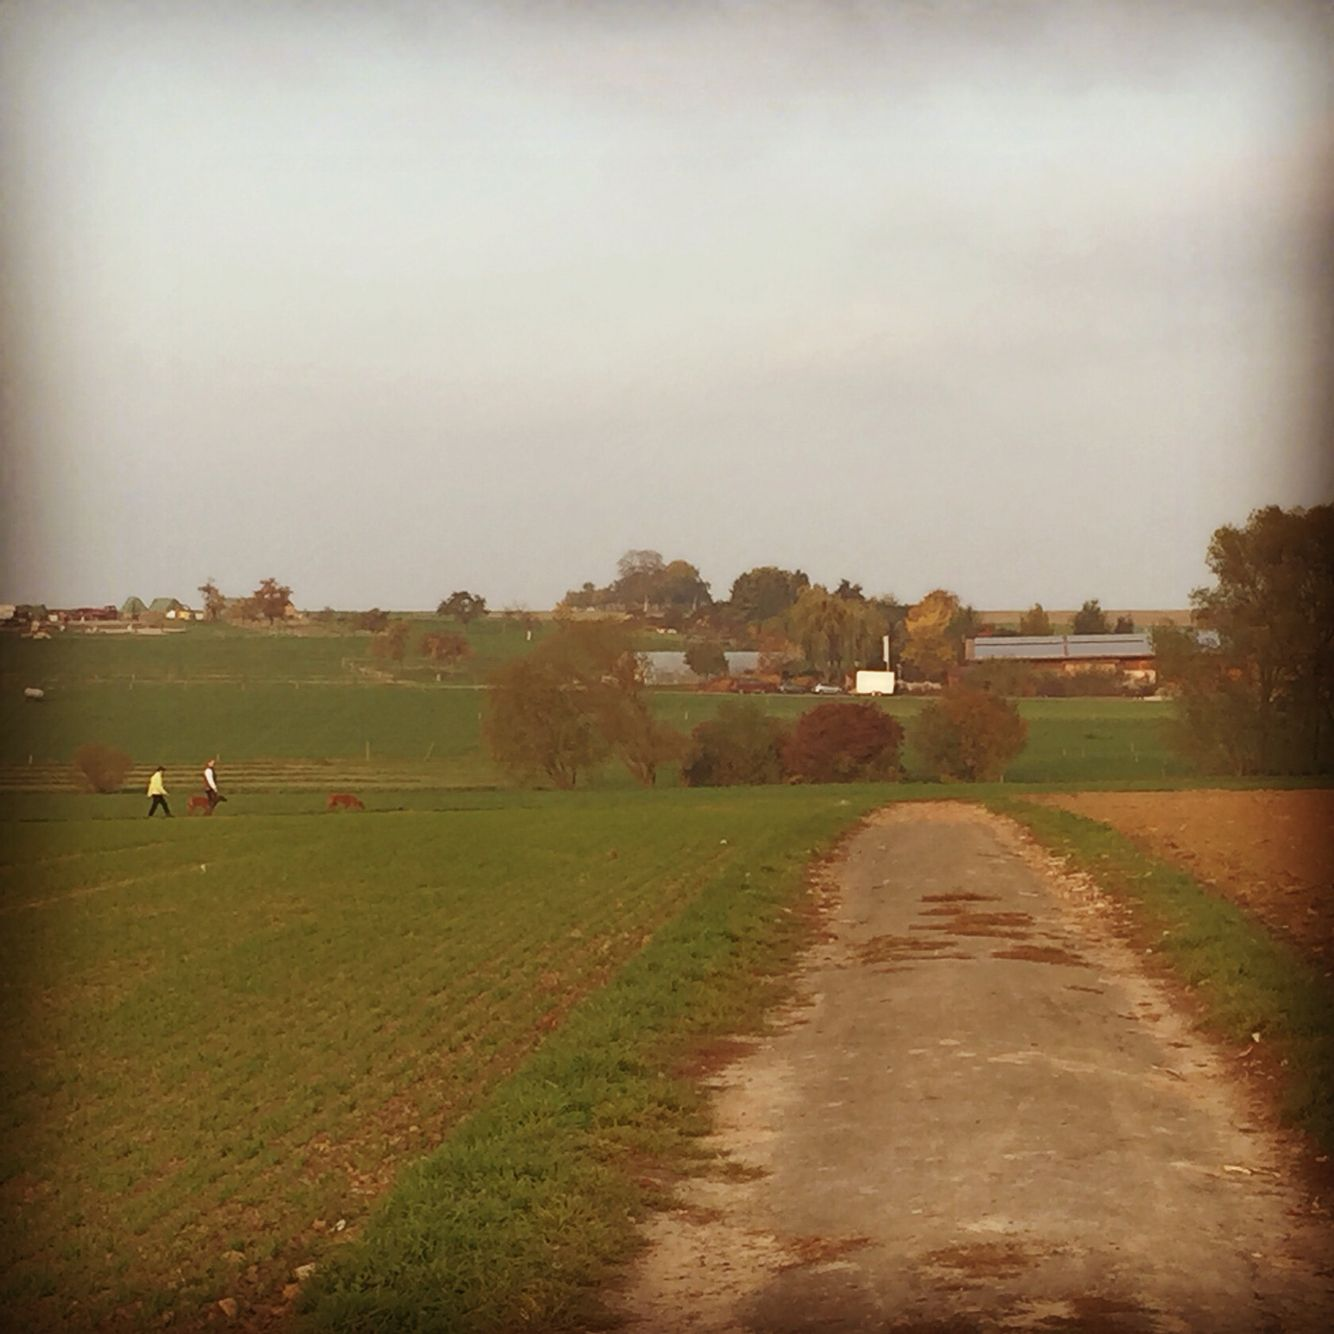 Running trail outside Frankfurt Country roads, Trail